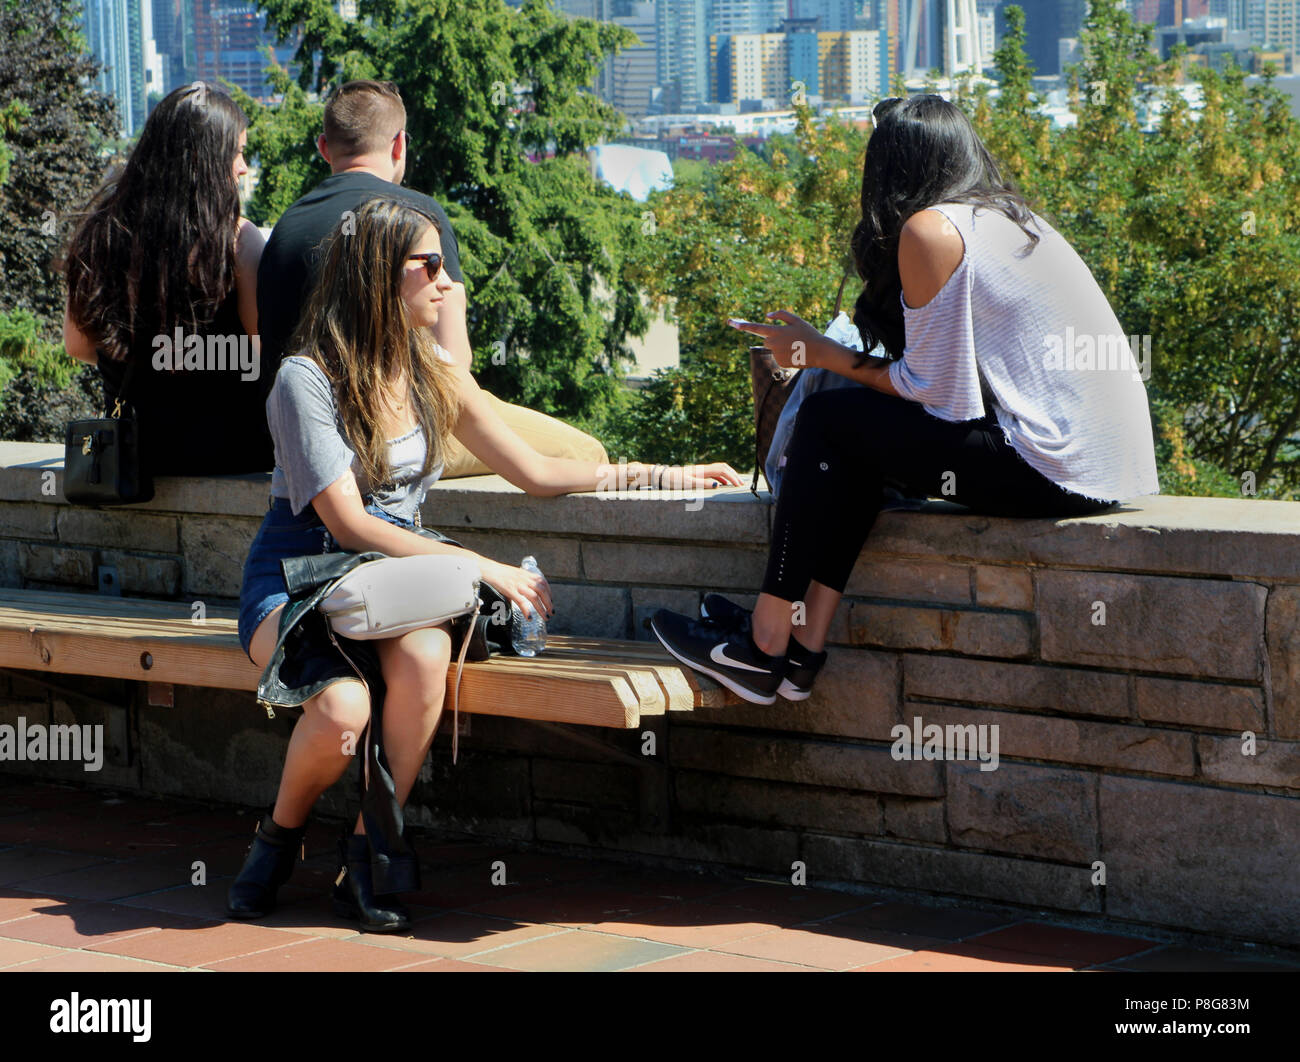 Young women chatting and relaxing at a park, enjoying the Seattle skyline view and the good weather. - Stock Image